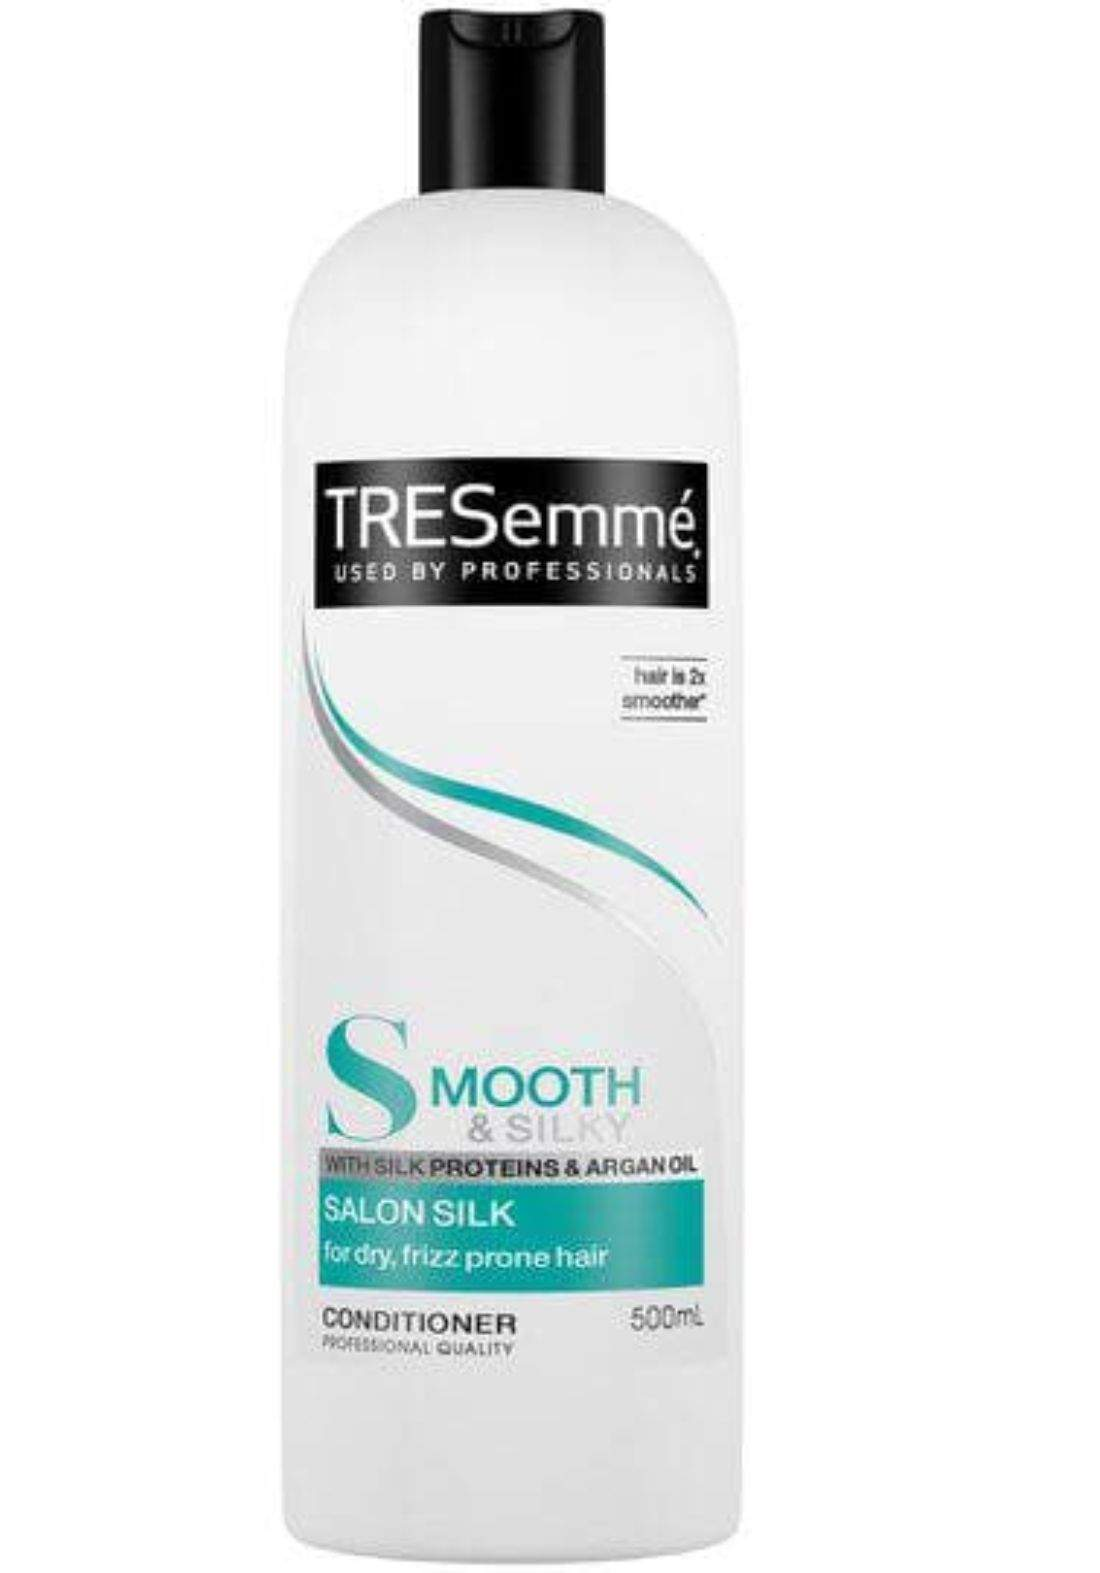 Tresemme  smooth and silk conditioner 500ml  بلسم لشعر ناعم وحريري